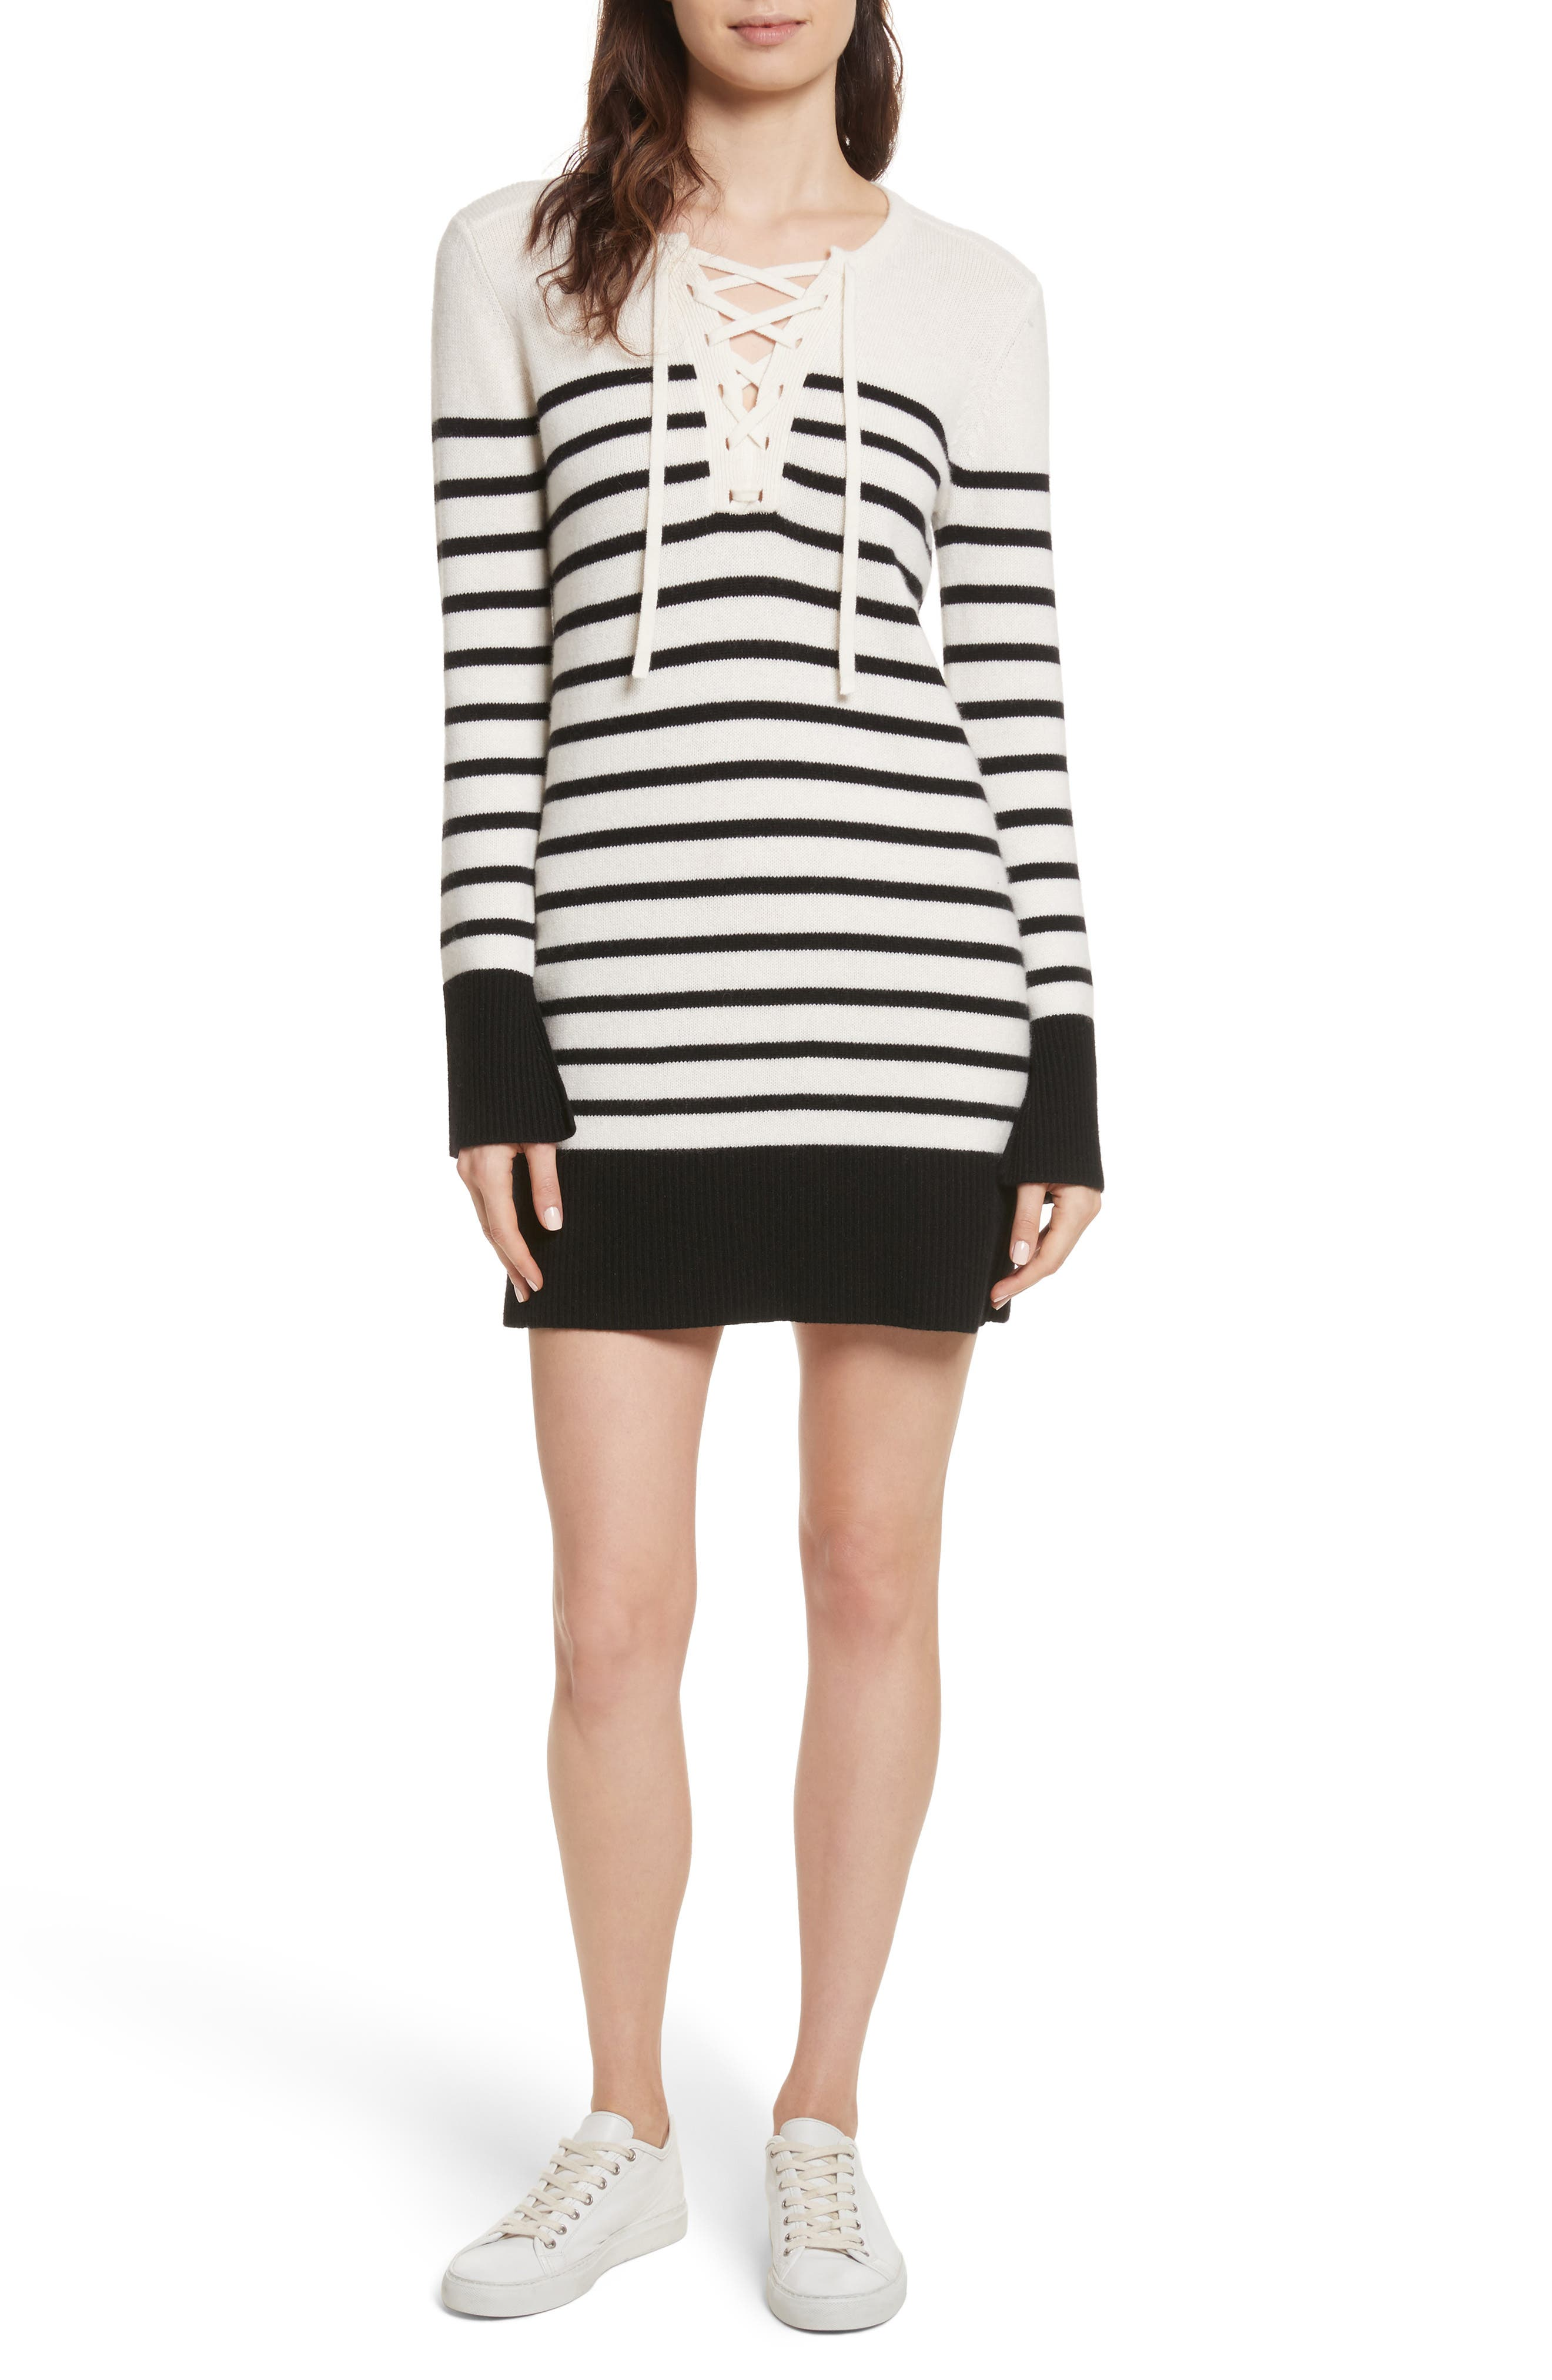 Joie Heltan Wool & Cashmere Sweater Dress